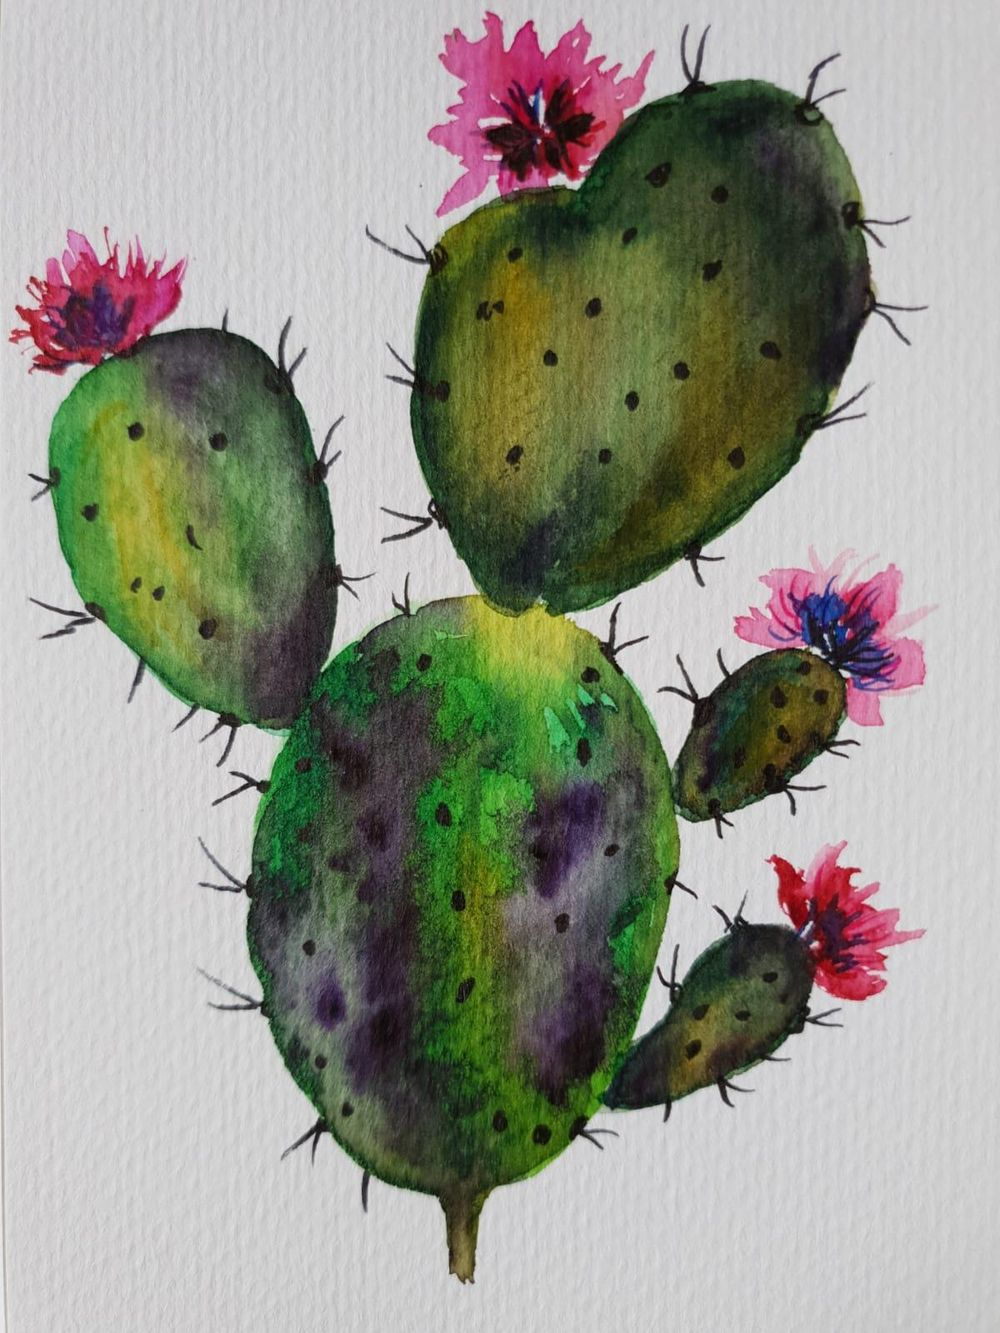 Watercolor Cacti - image 2 - student project